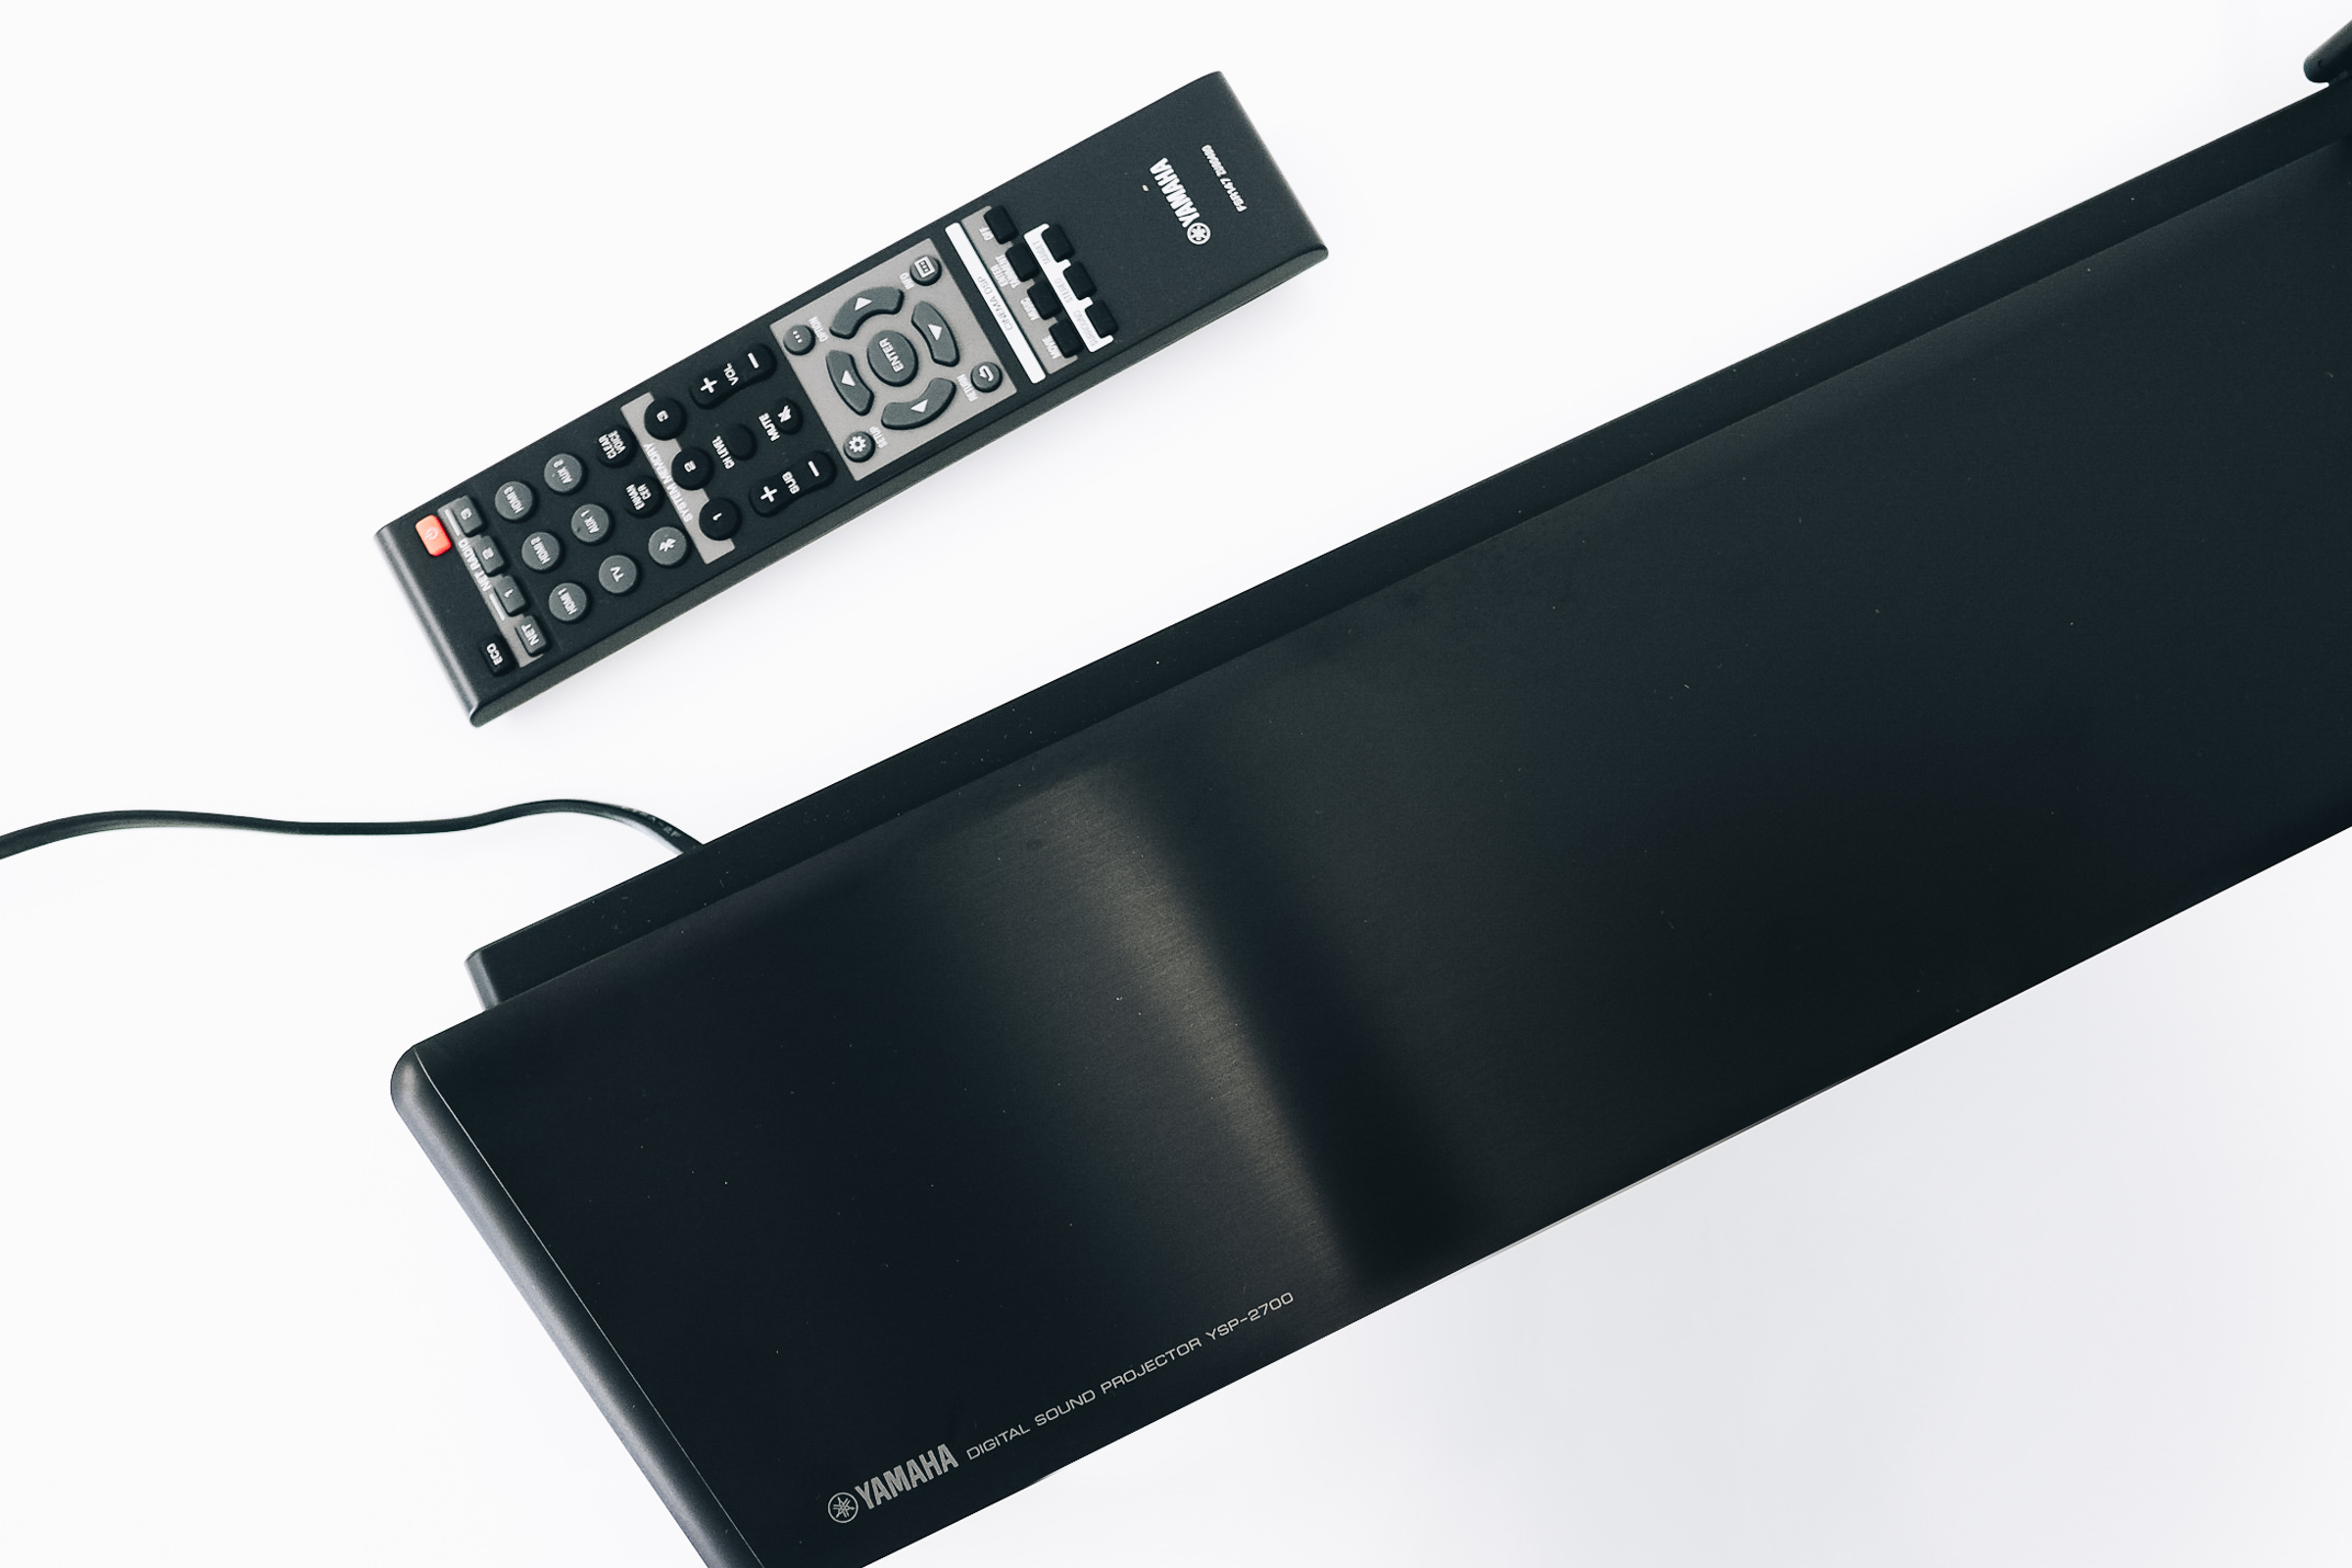 Yamaha YSP-2700 Sound Bar